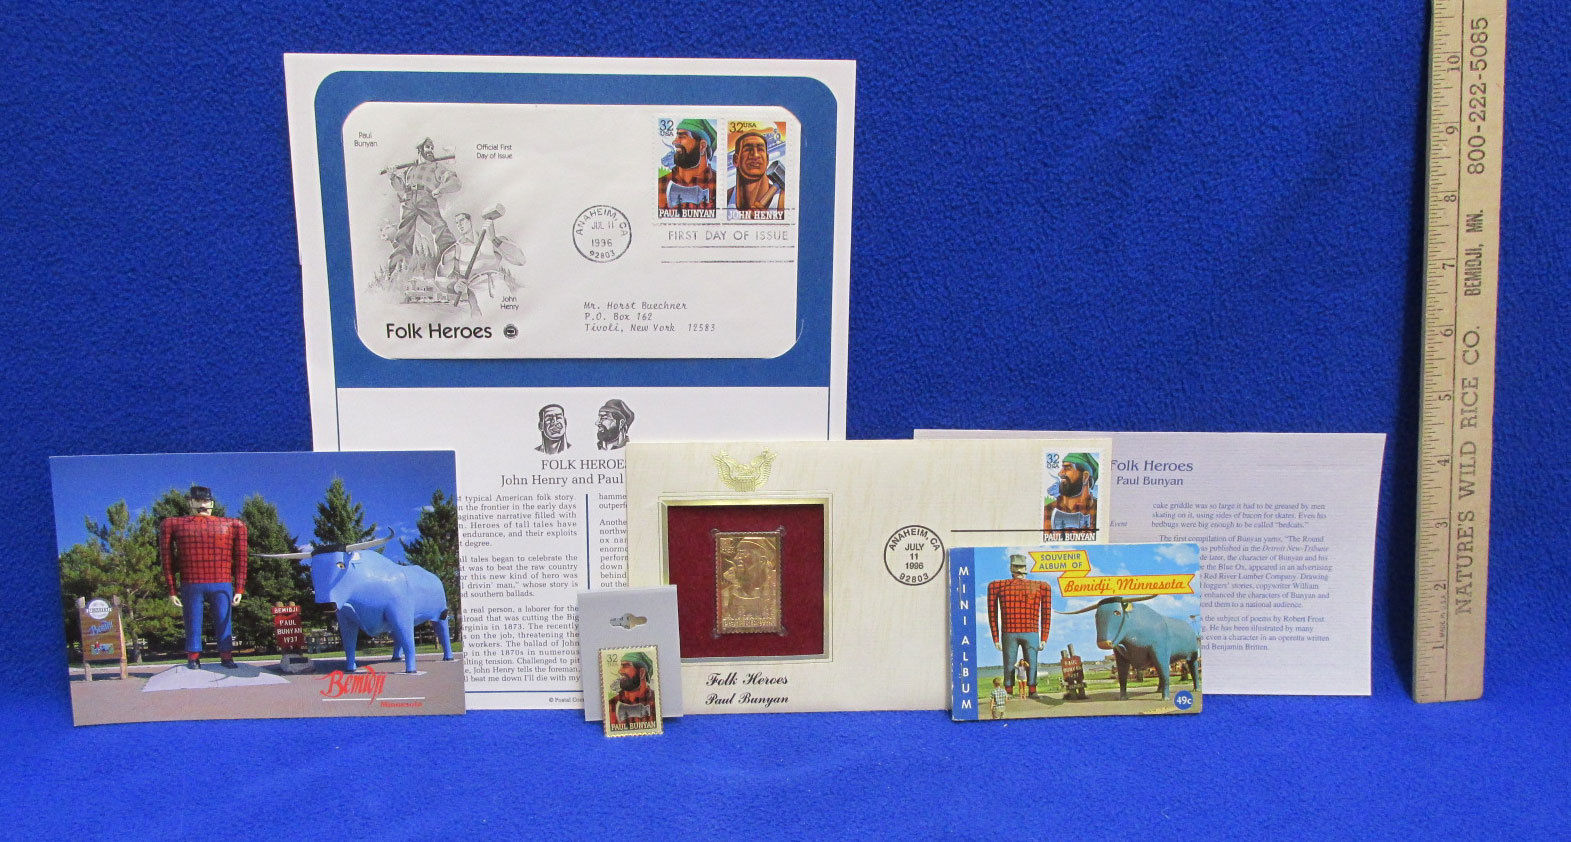 Paul Bunyan John Henry Stamp Folk Heros First Day Issue Post Card Pin Gold Stamp